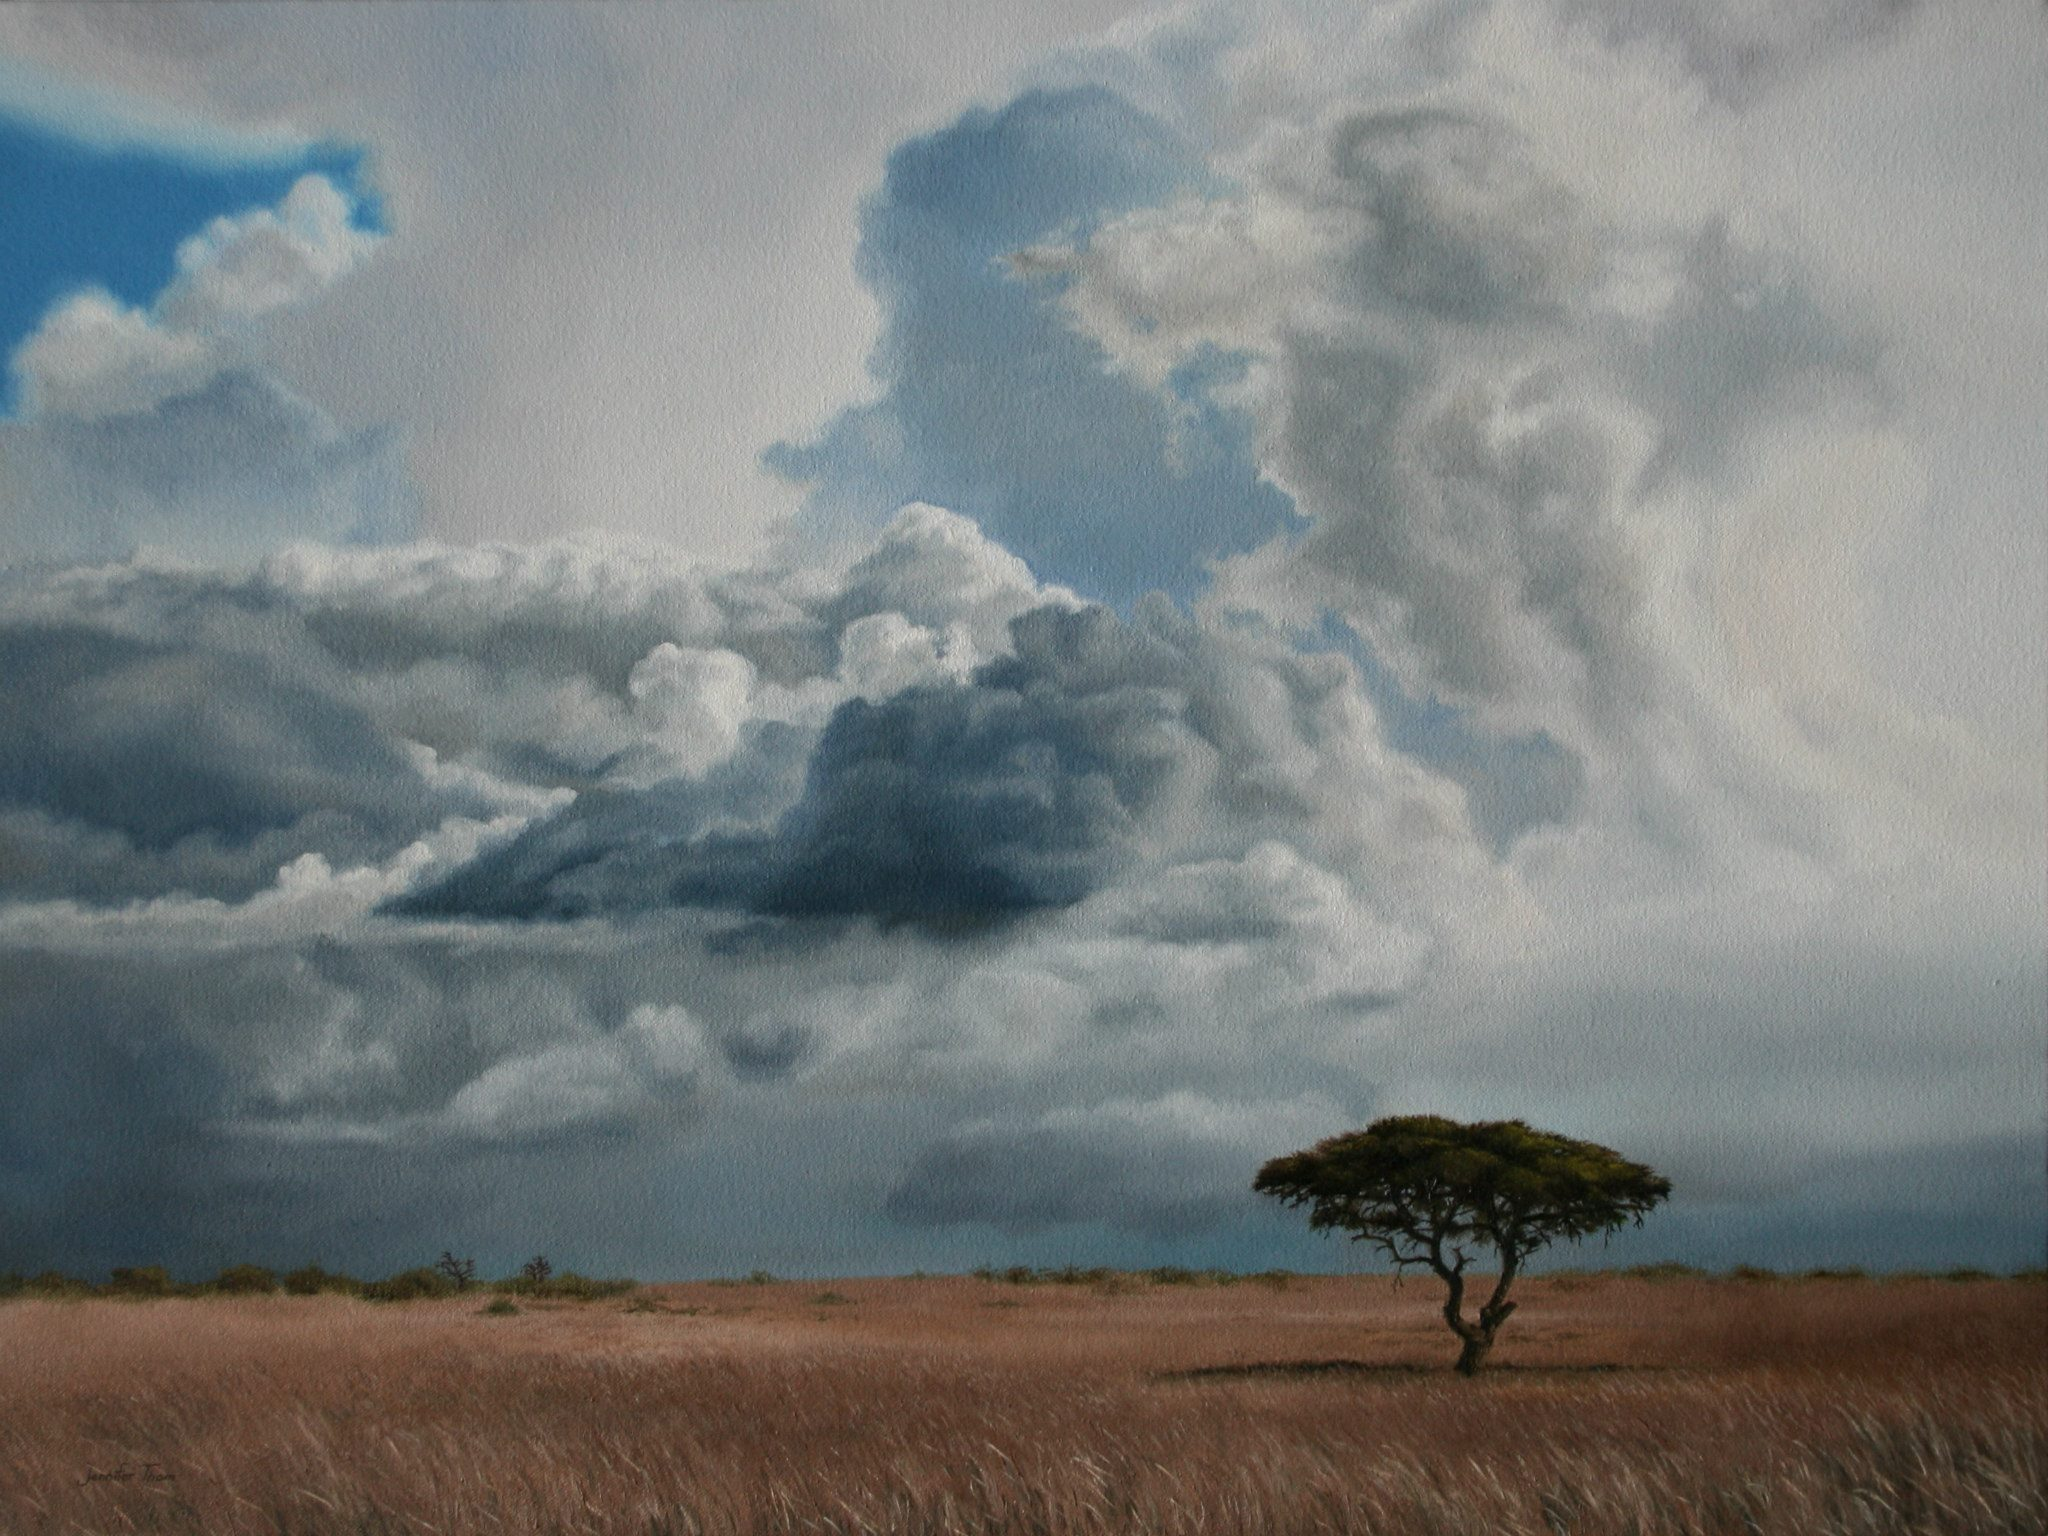 Storm Clouds Over Africa